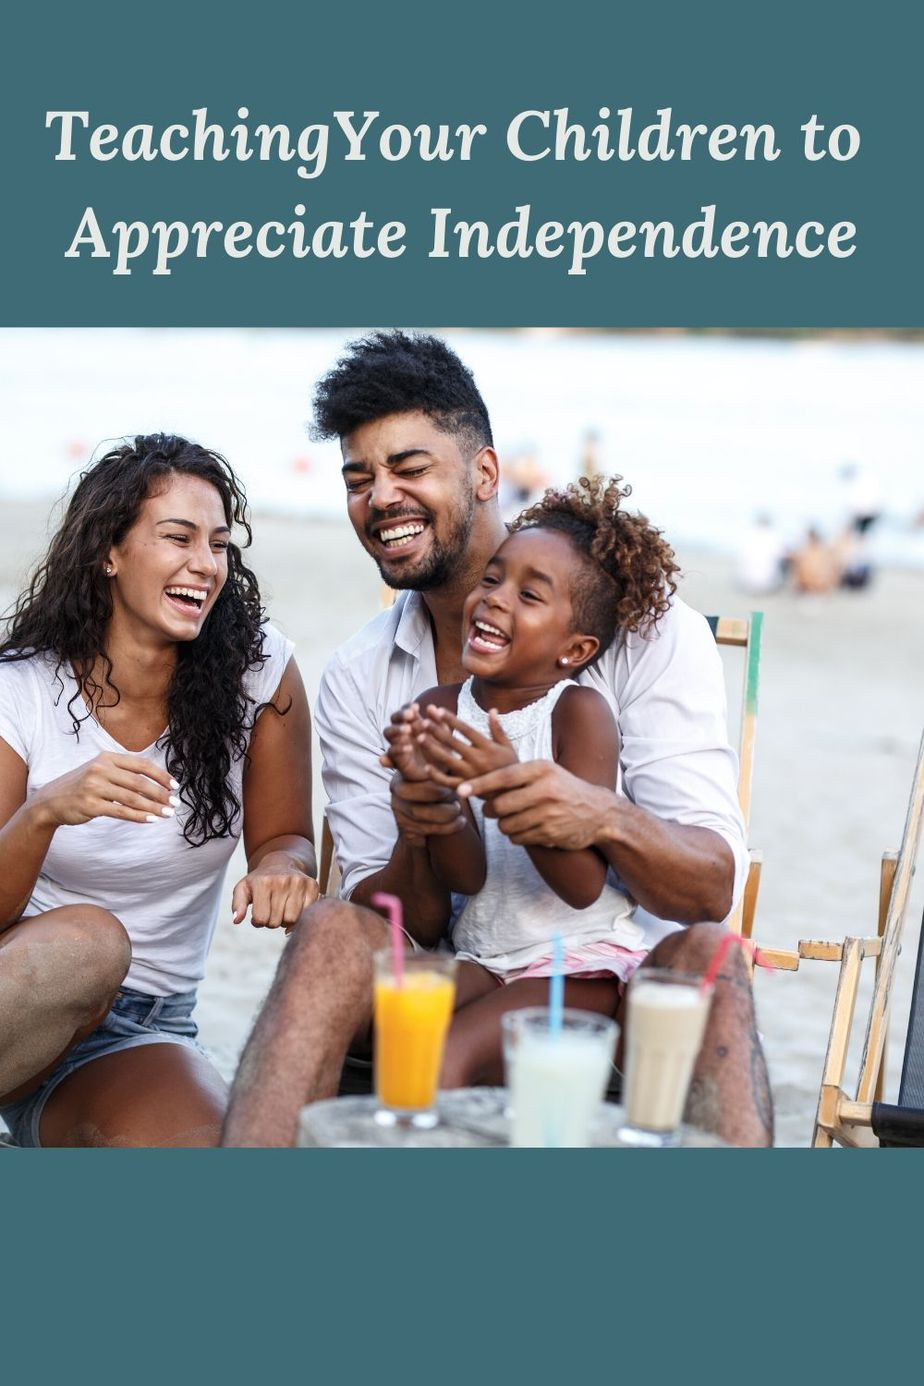 Teaching Your Children to Appreciate Independence